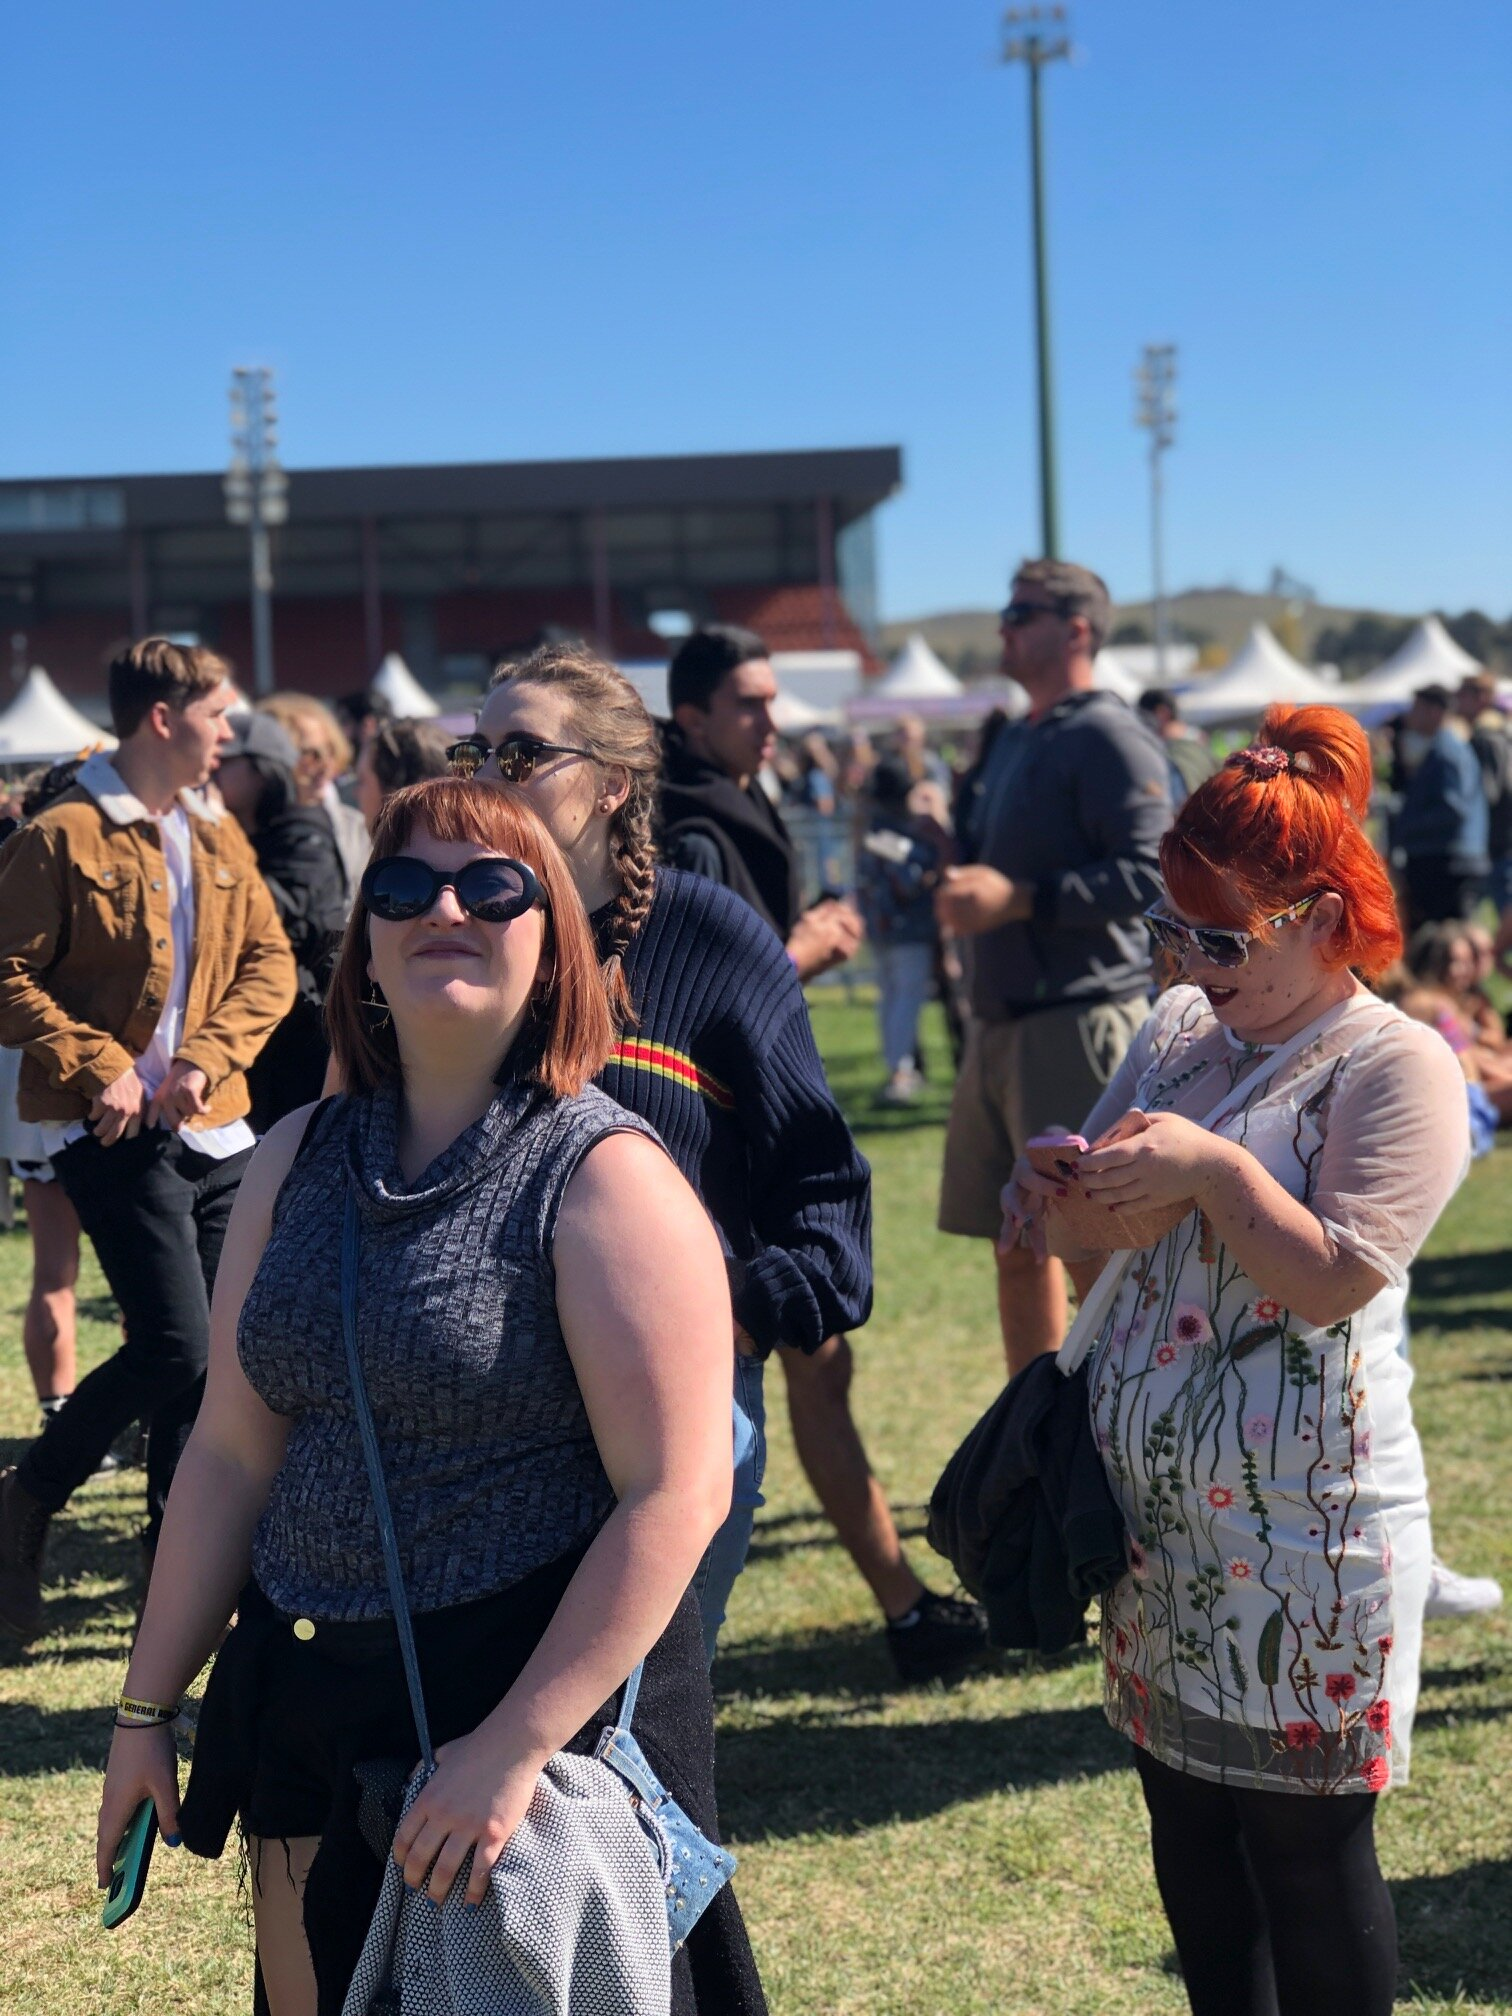 We didn't make it to the Arctic Monkeys, but we did make it to Groovin' the Moo